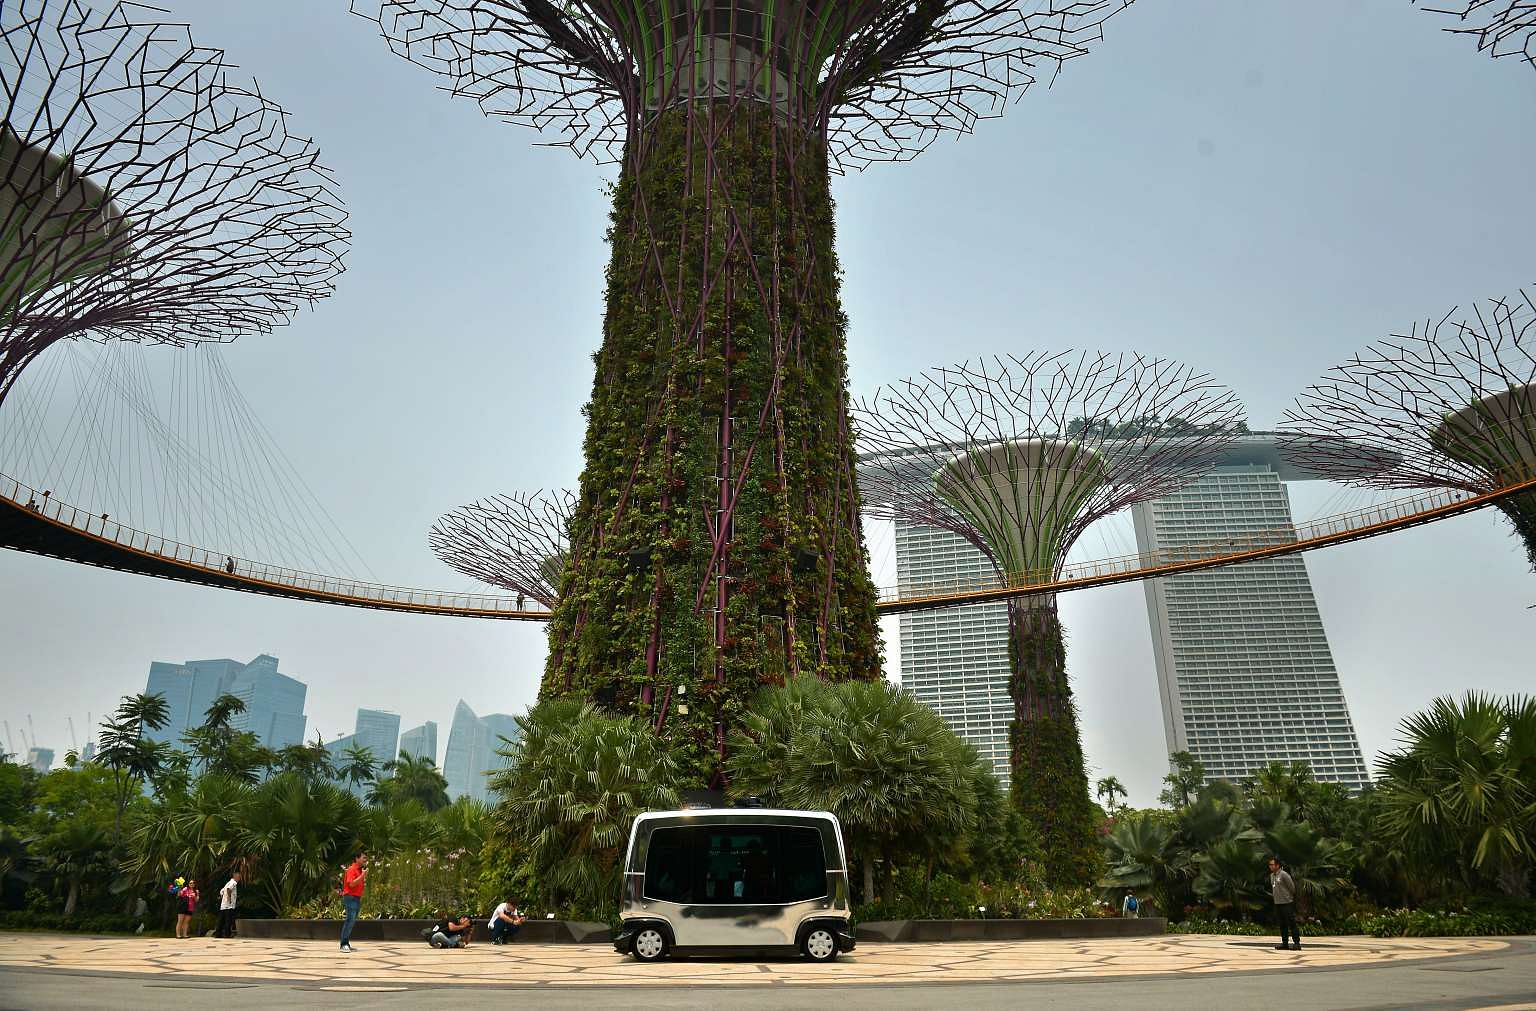 Garden By The Bay Bus autonomous vehicle trials to hit public areas including gardens